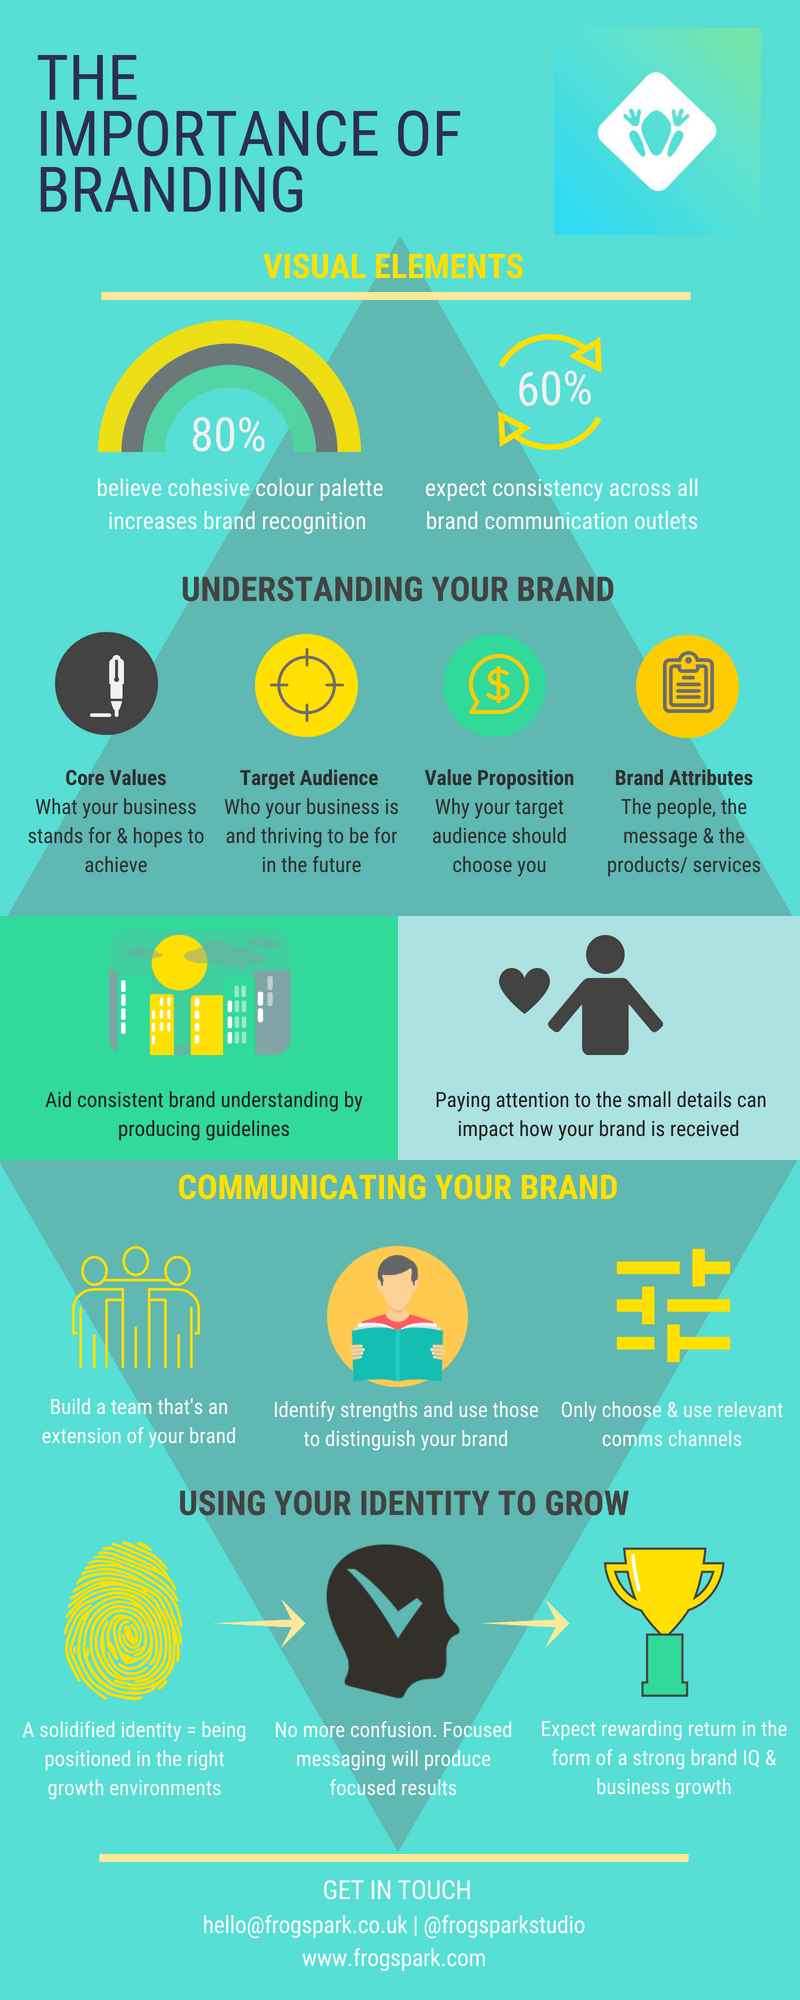 Frogspark on Branding Infographic